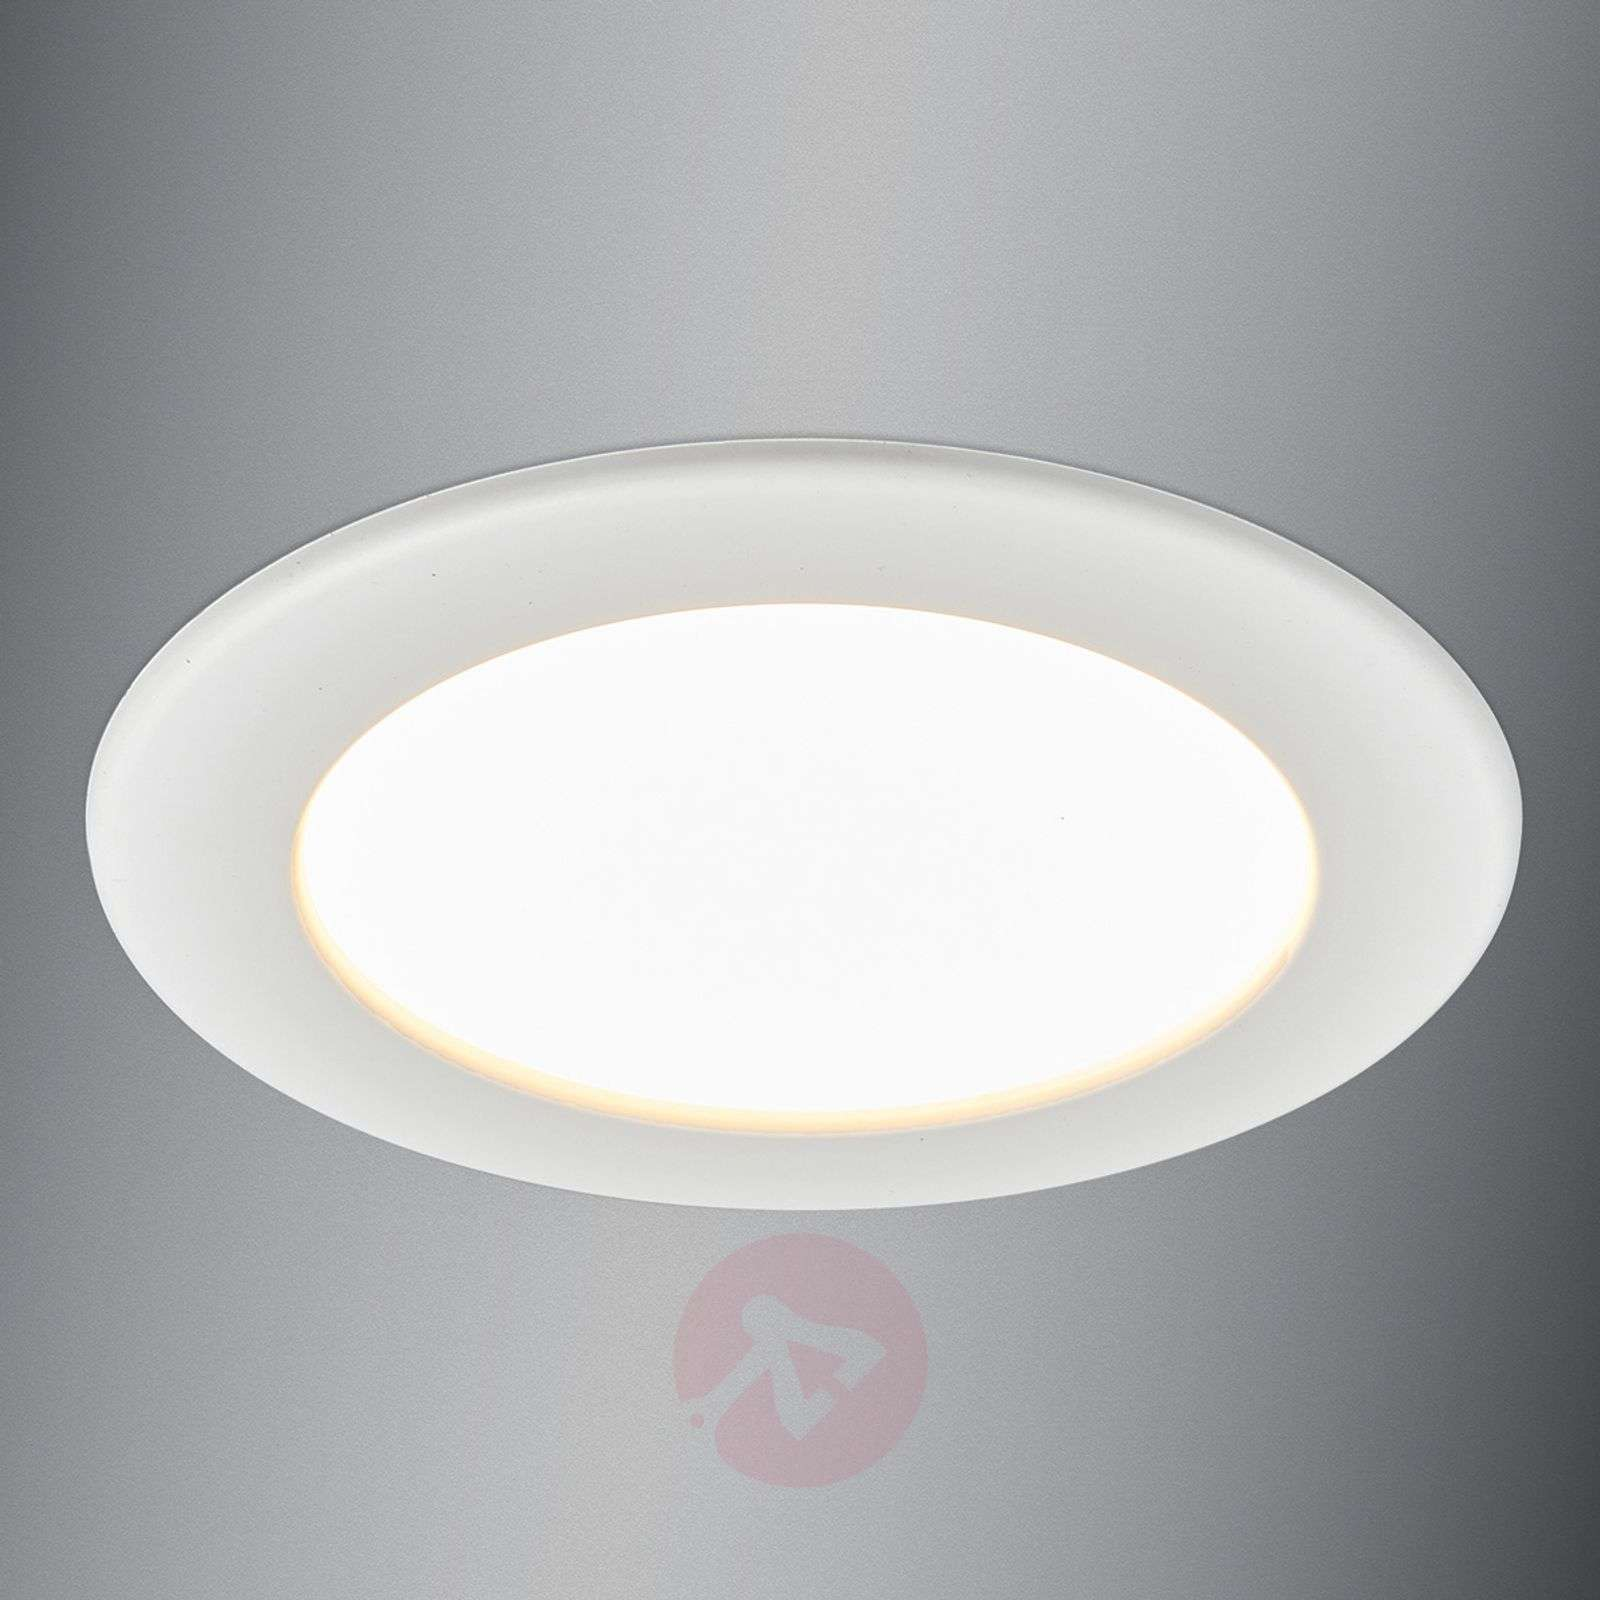 LED recessed spotlight Editha for bathrooms, 10.5W-9978014-012